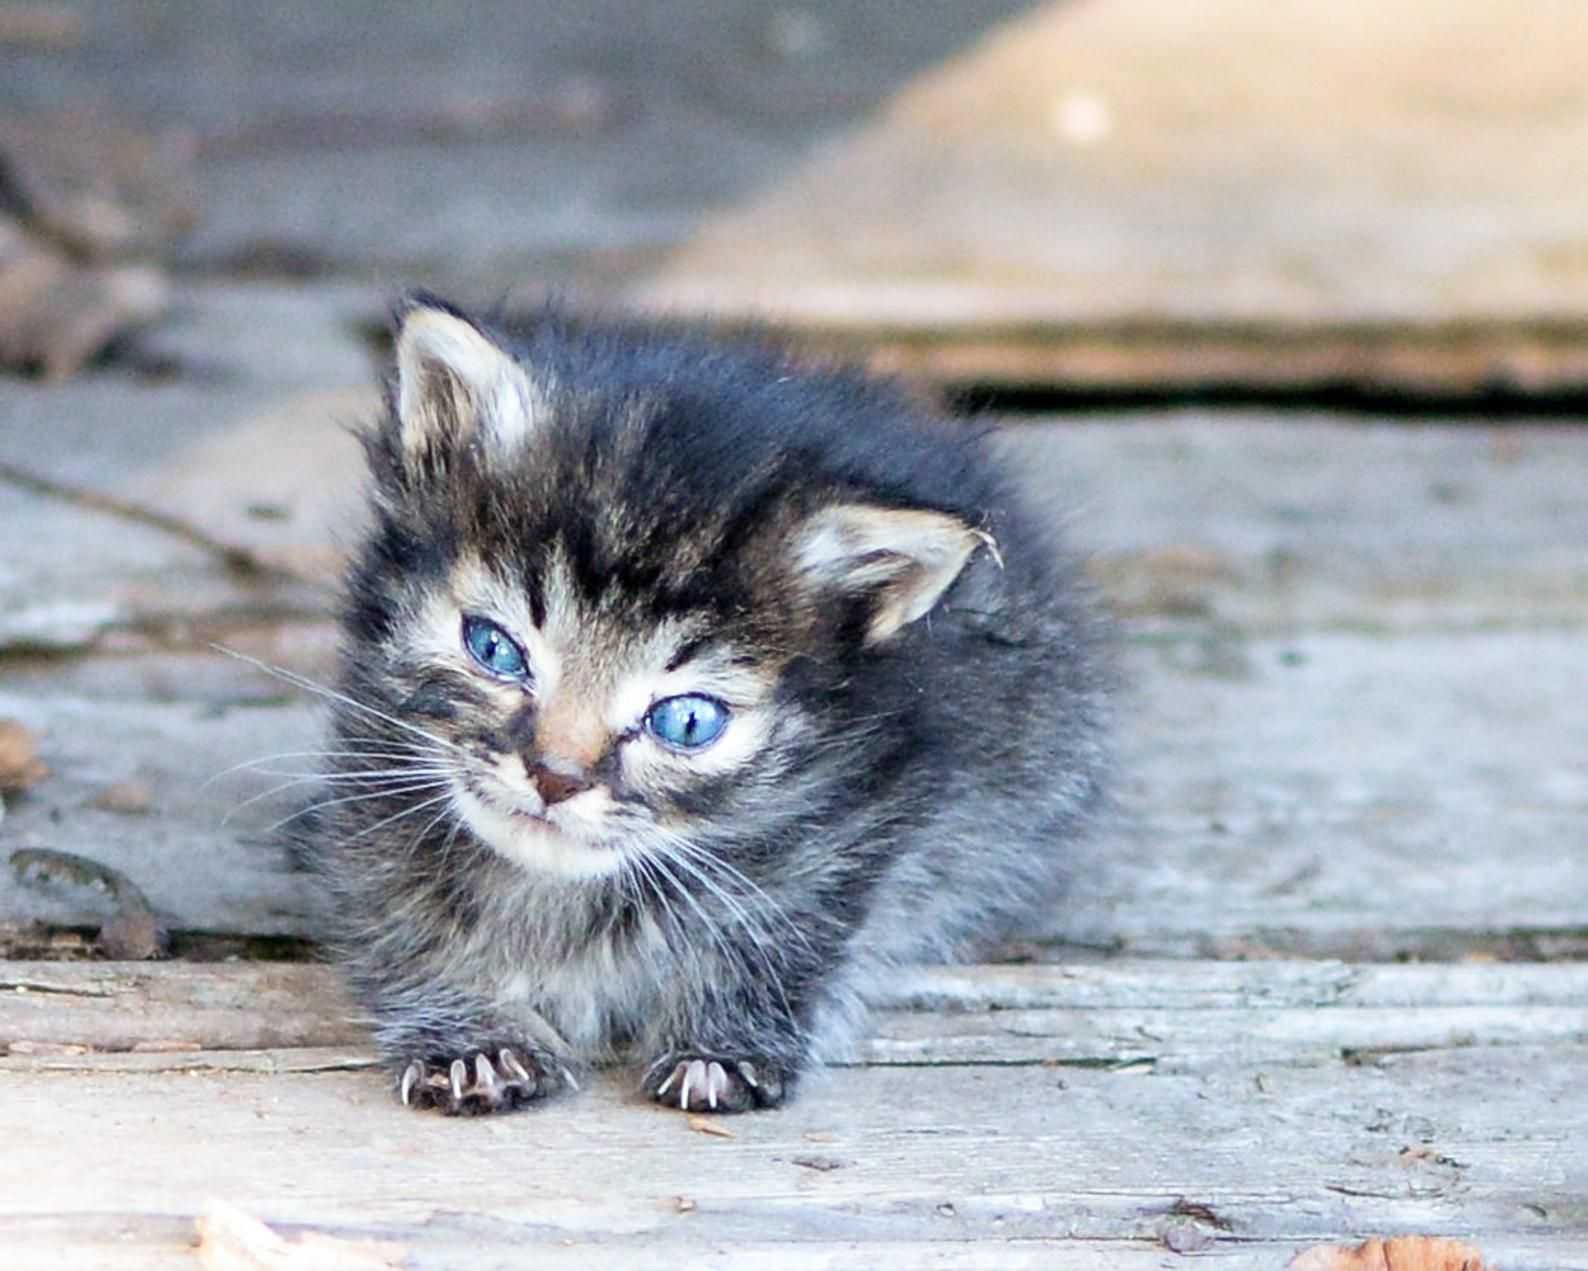 Photograph Of Nano The Tiniest Kitten For Download Etsy In 2020 Tiny Kitten Kitten Breeds Feral Cats